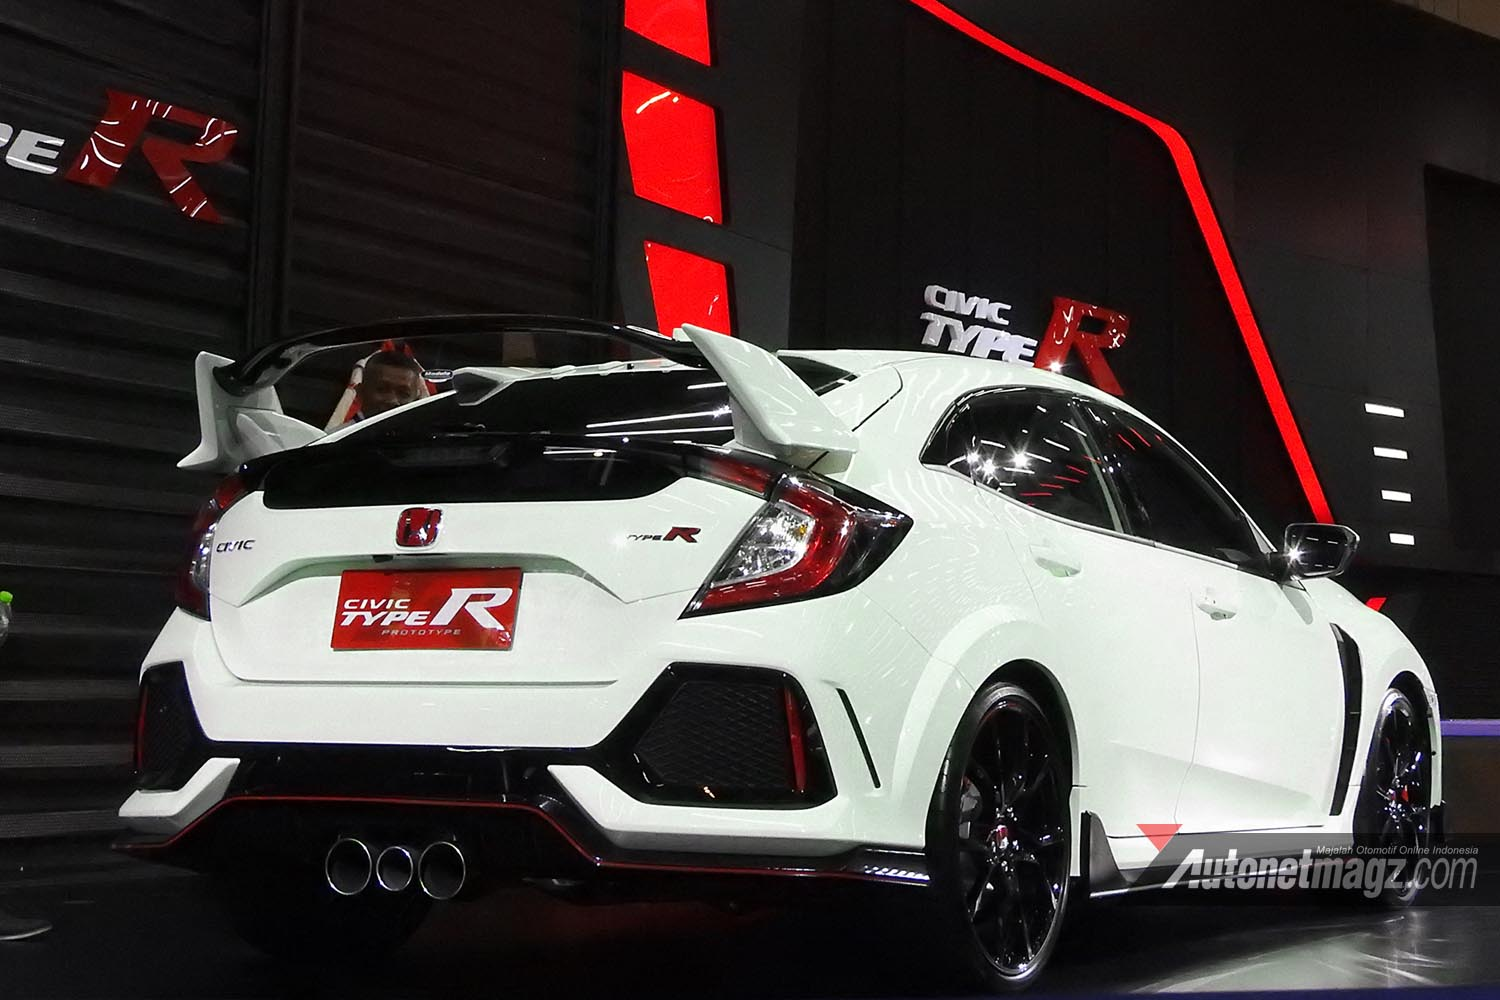 Honda Civic Rs >> Resmi Sapa Surabaya Honda Civic Type R Curi Perhatian